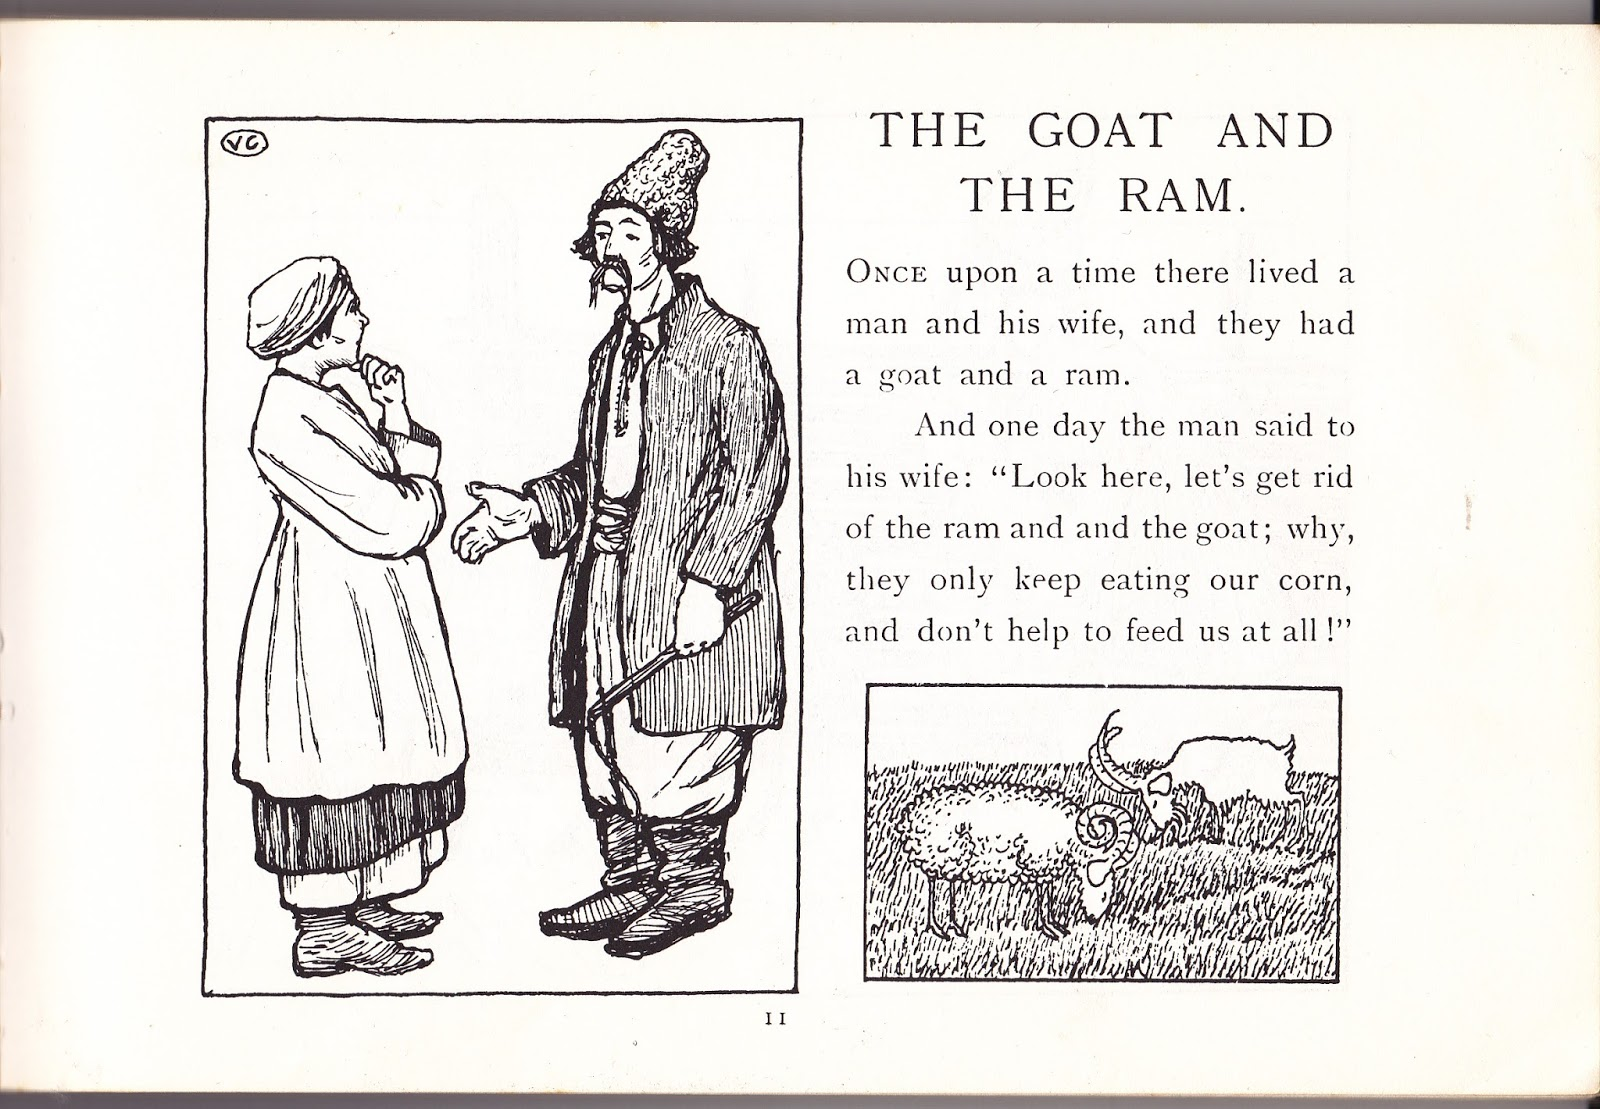 Because This Is Book Is The Most Easily Available Im Going To Follow The Story Of The Goat And The Ram With A Few Other Stories Worth Looking Up In That